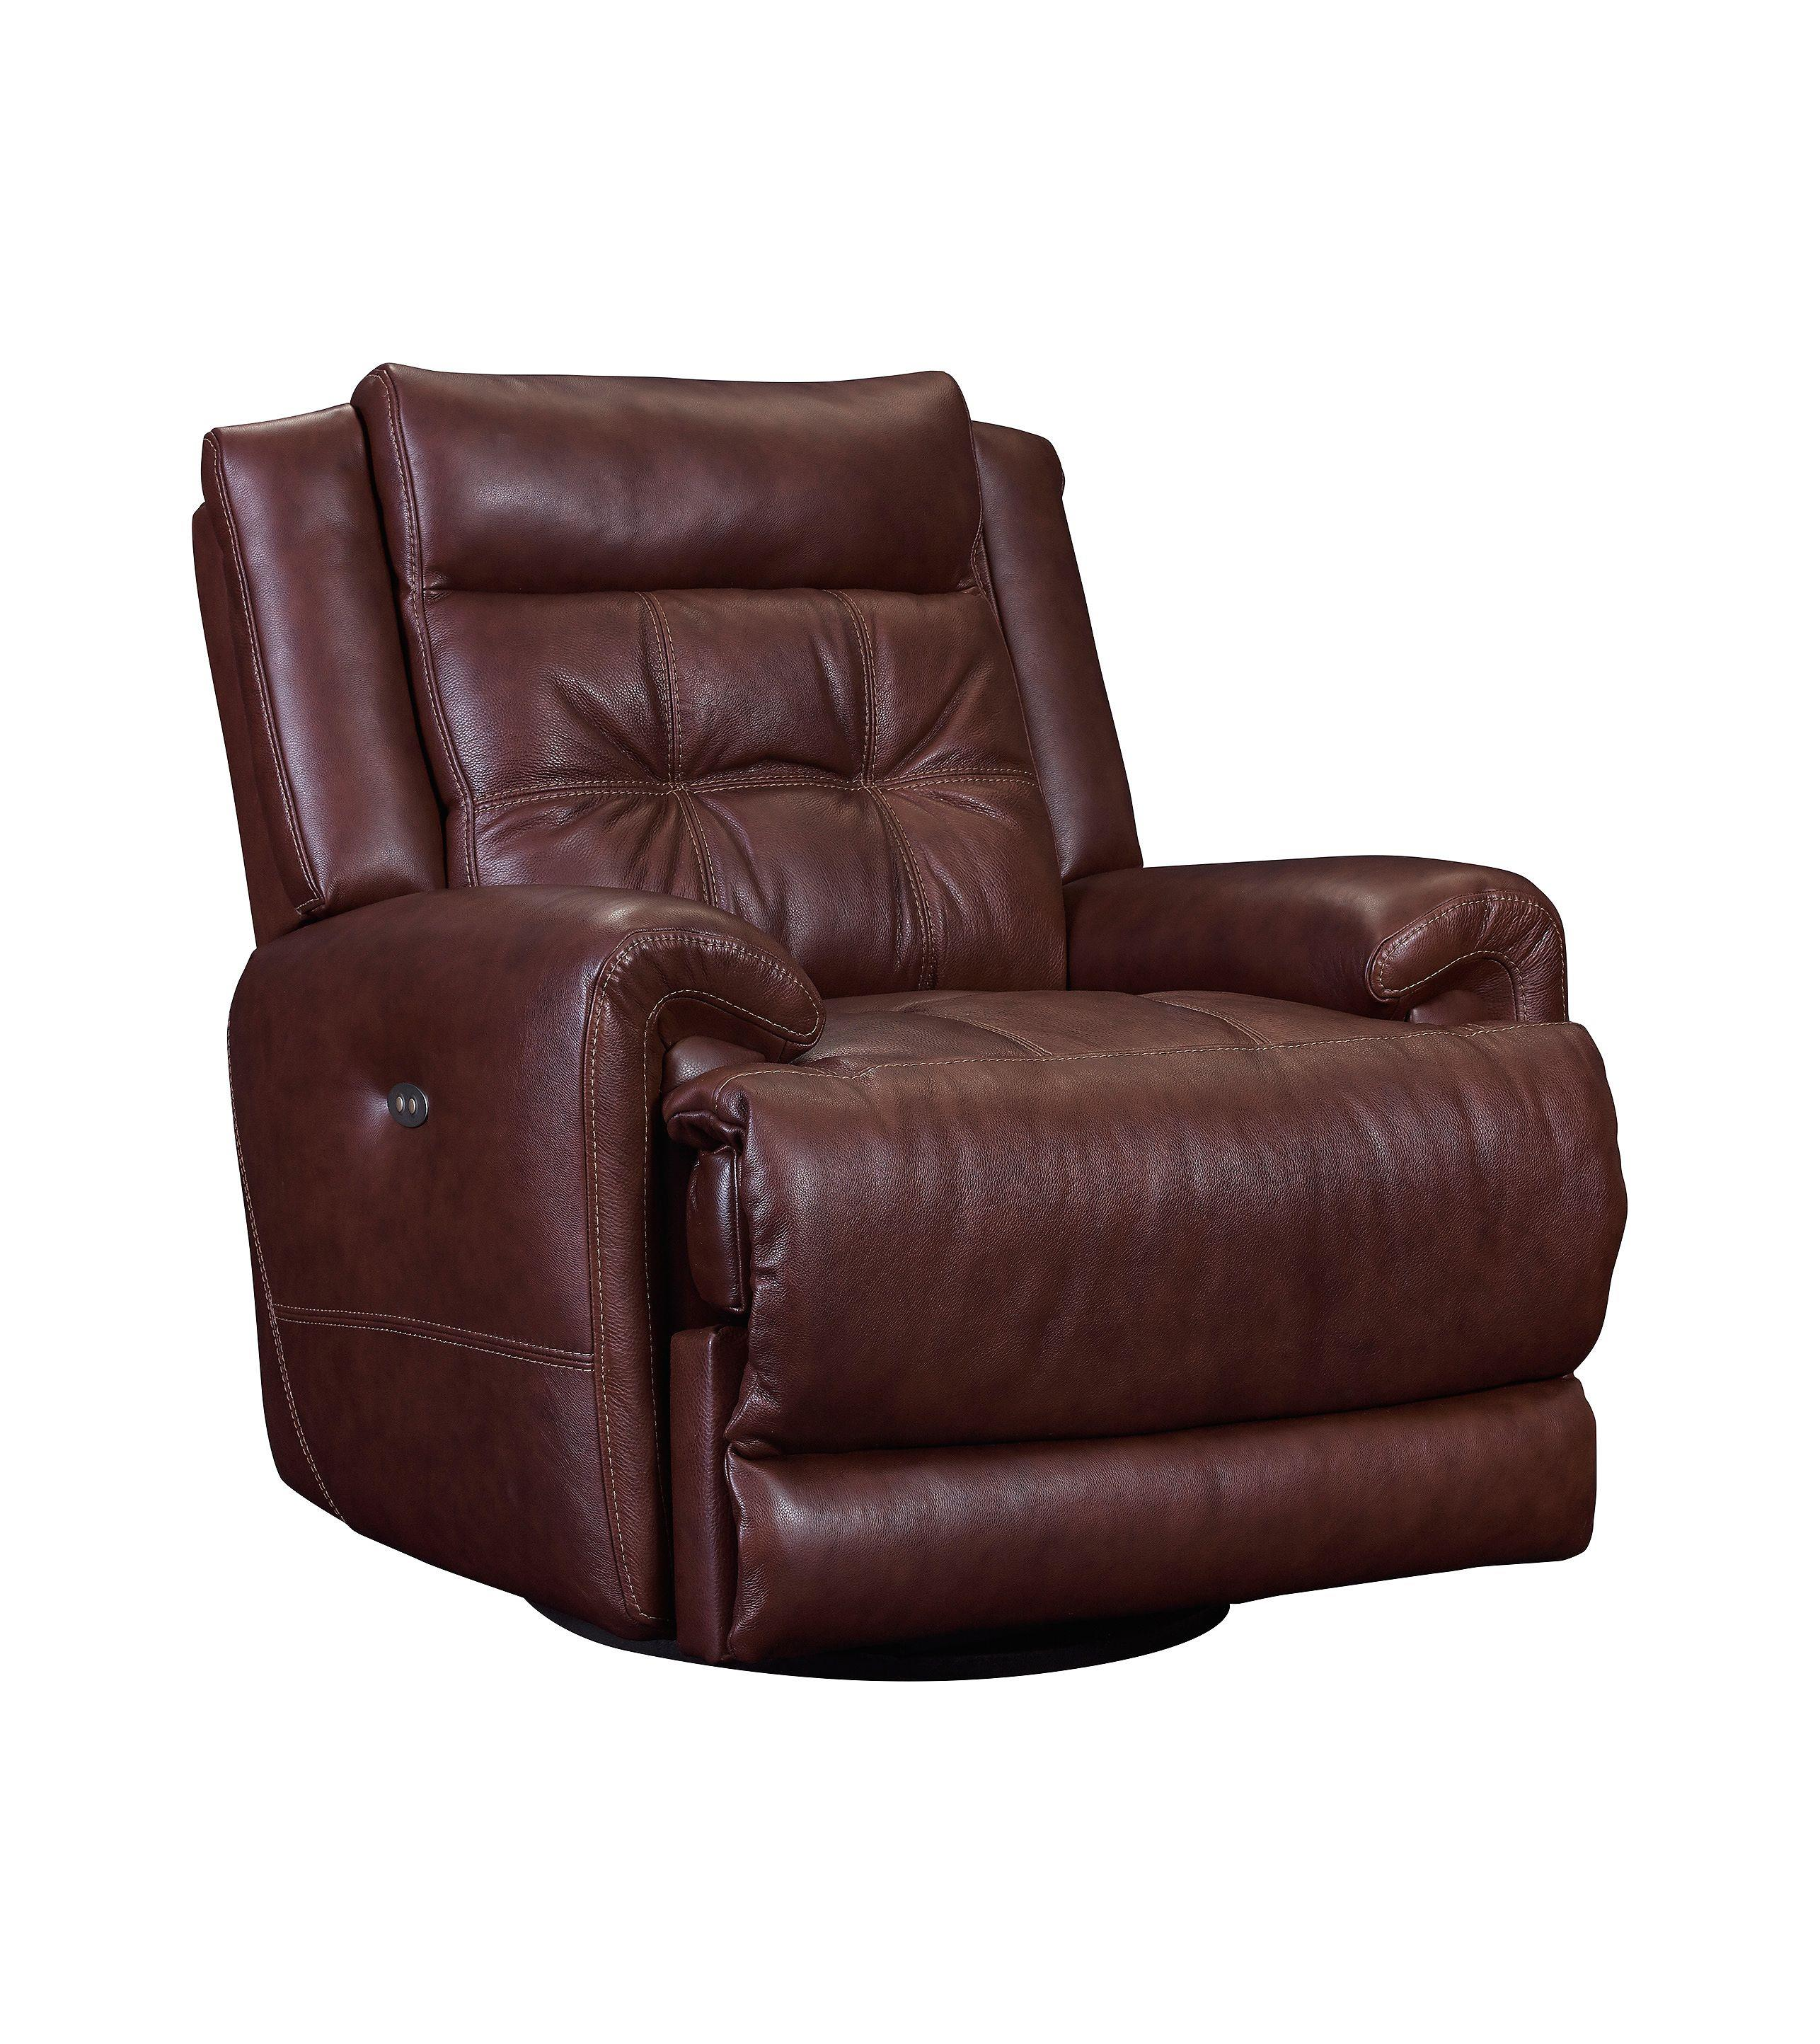 Lane Chair 1 2 Reclinerlane 2769 Mission Recliners Style Patent Us6612141 Interconnected Lock With Remote Locking Mechanism Corsica Casual Rocker Recliner Tufted Seat Back